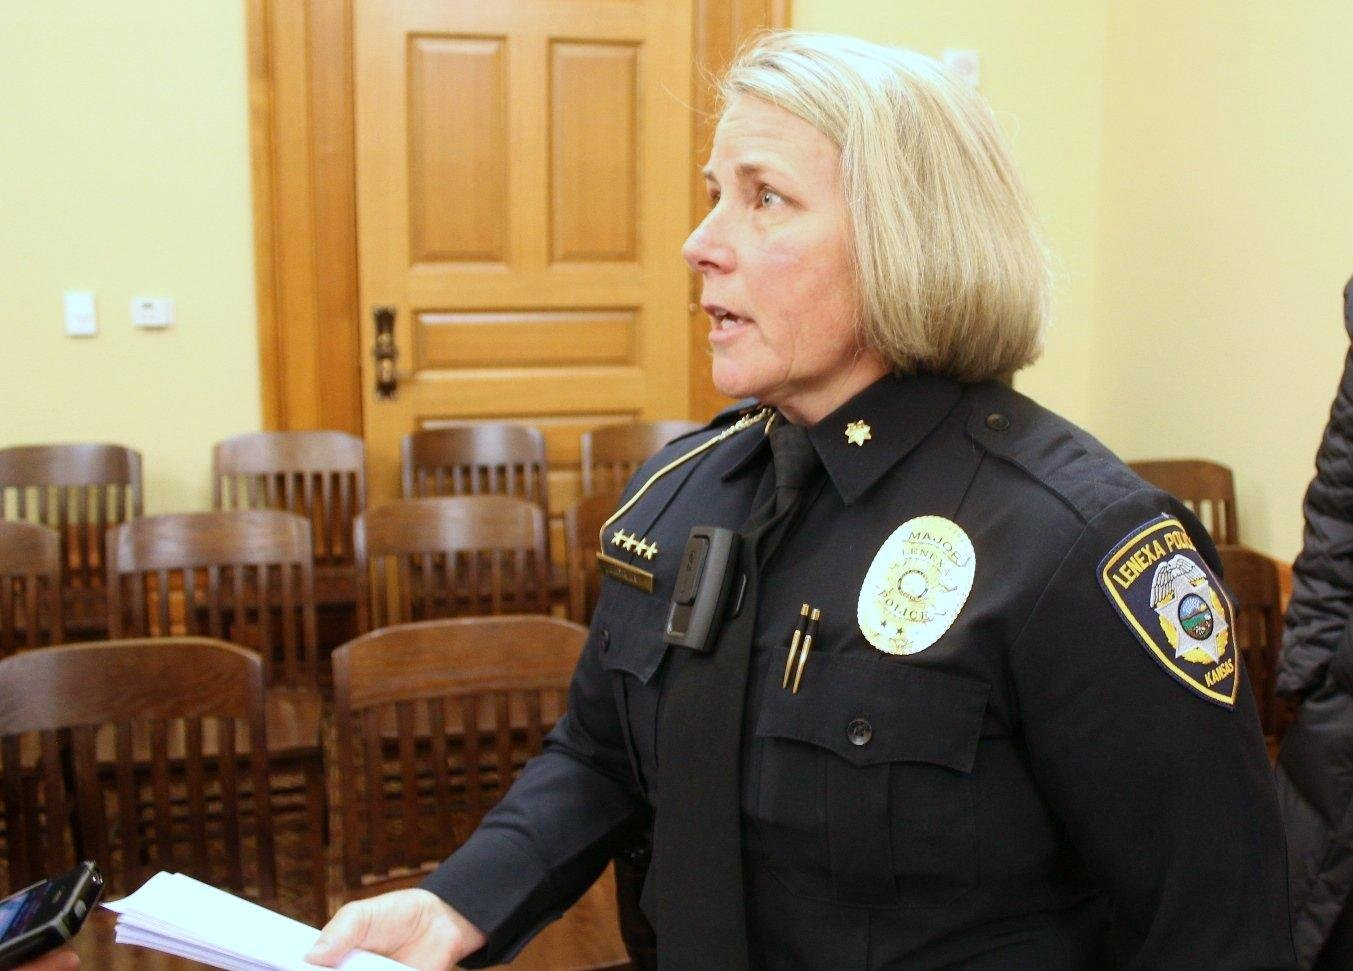 Lenexa Police Major Dawn Layman wearing a body camera while visiting the Statehouse in 2015. (Photo by Stephen Koranda)